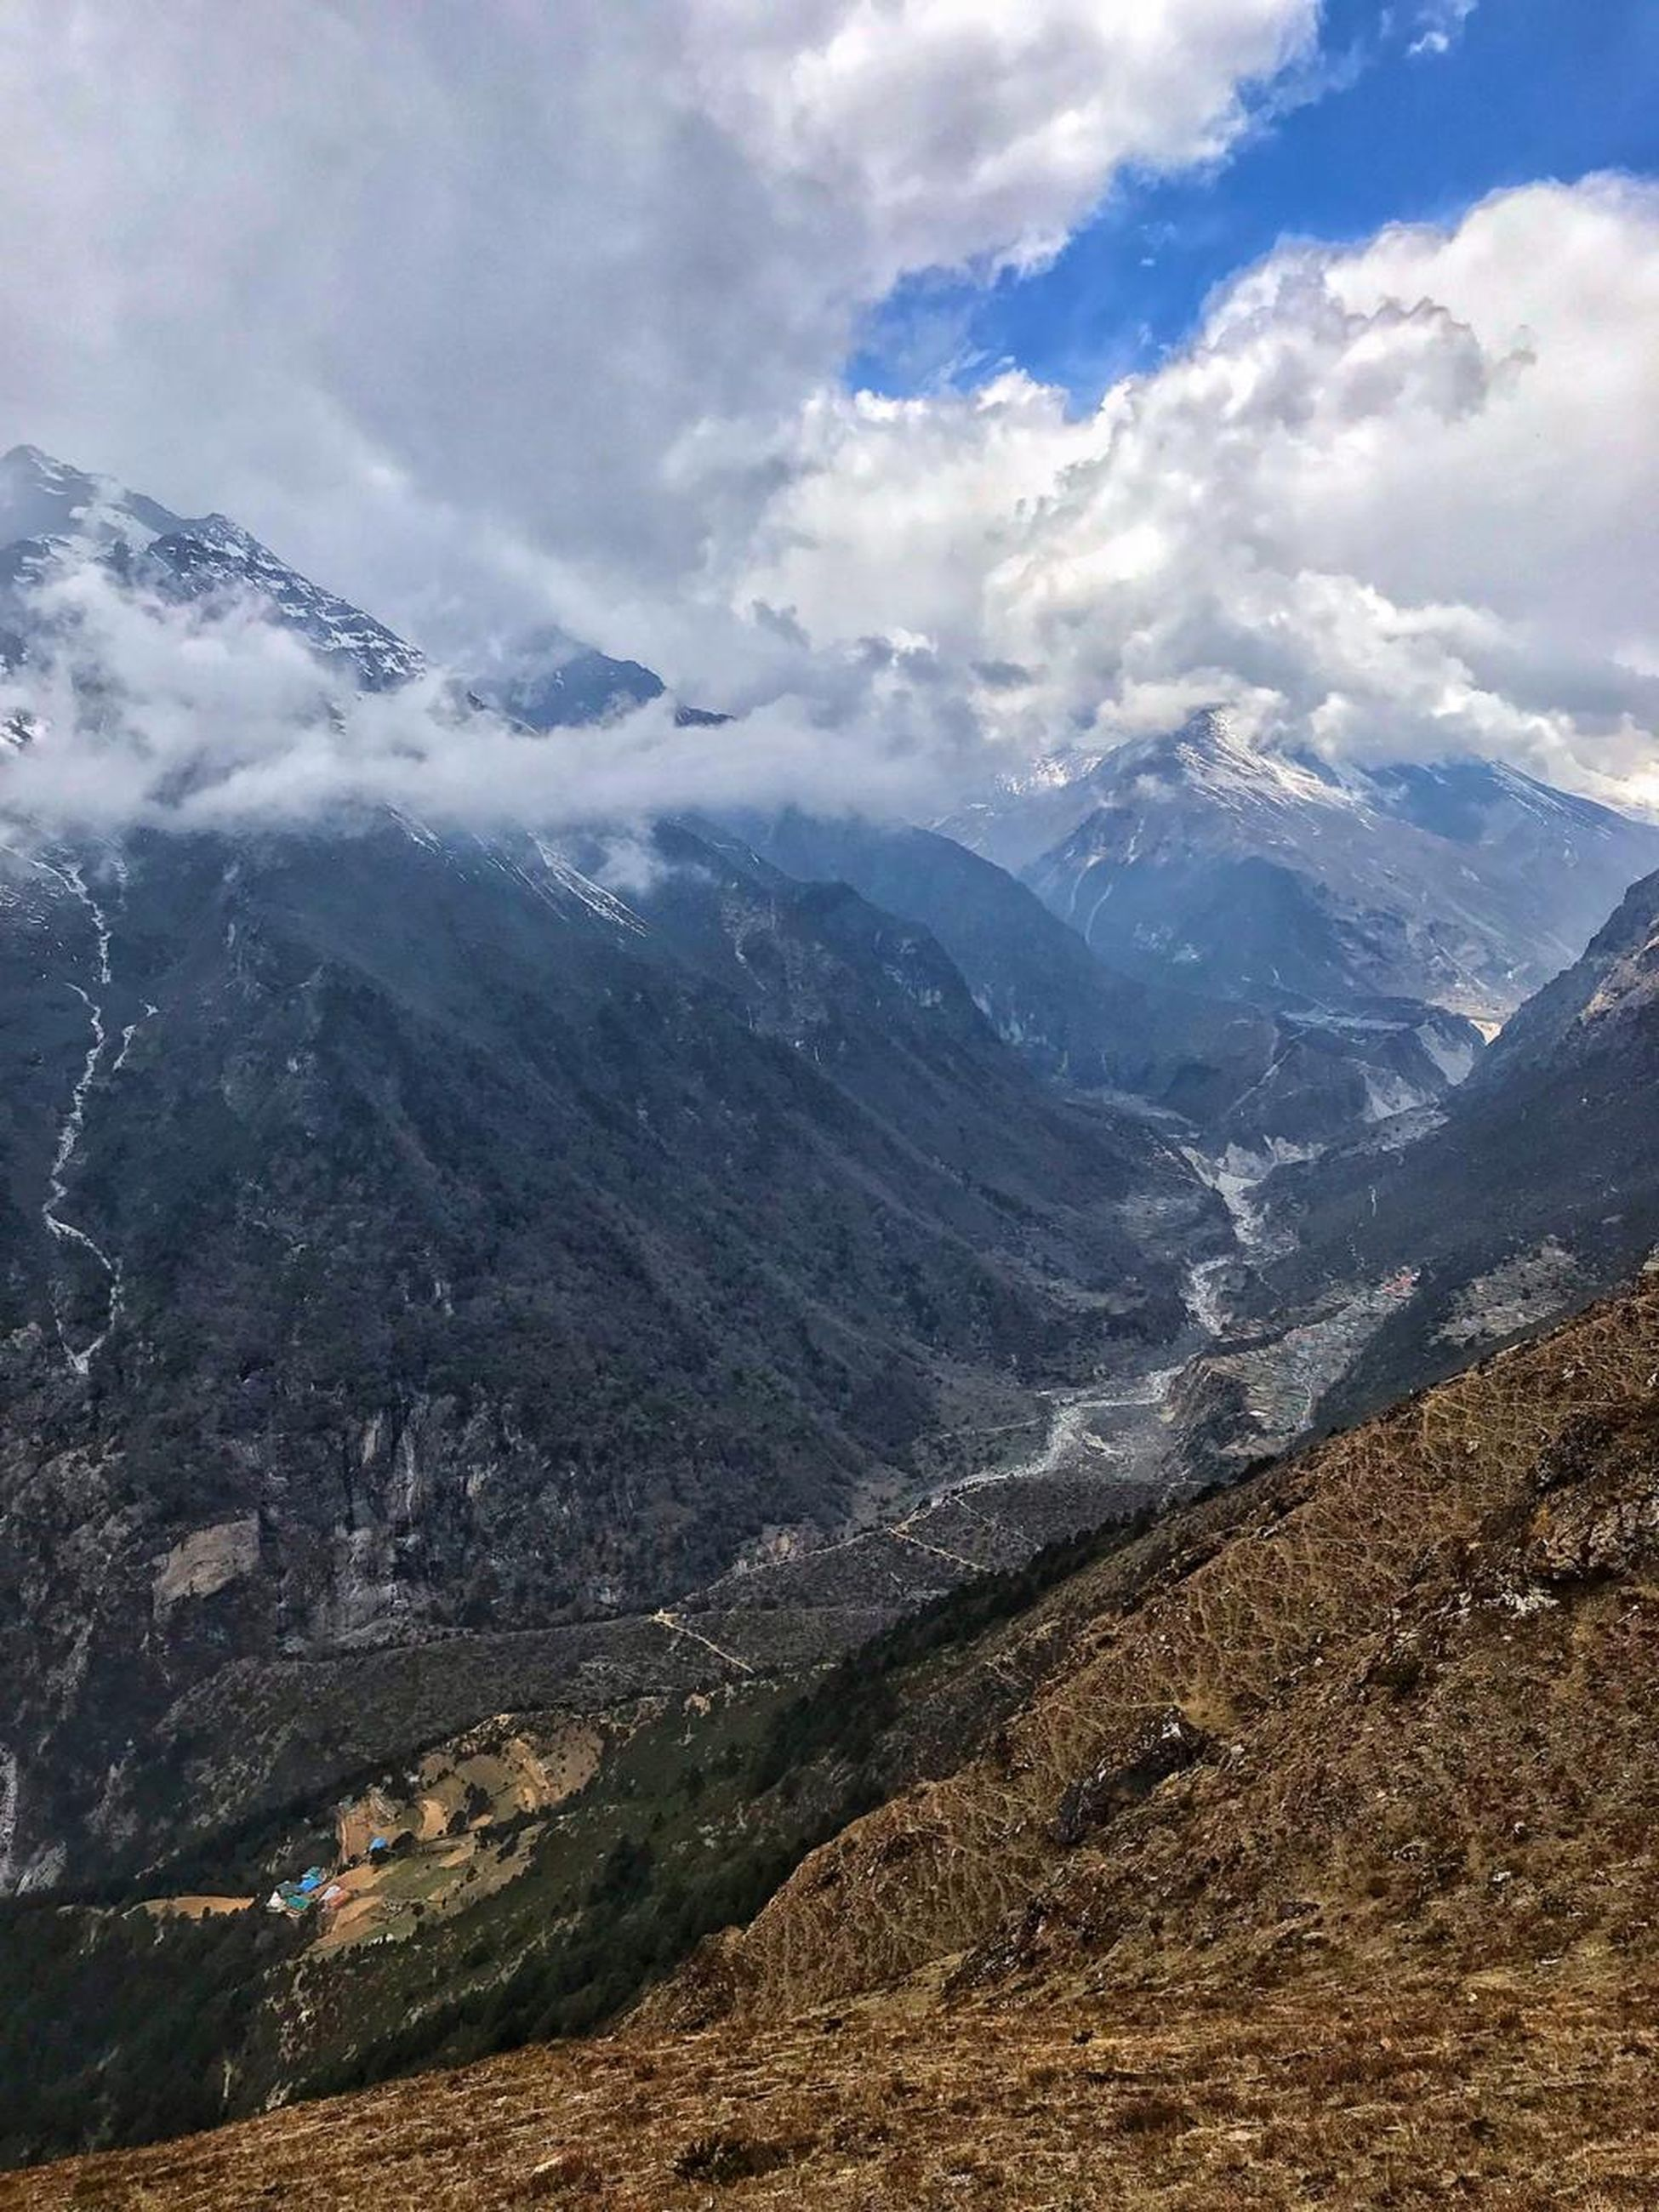 mountain, environment, landscape, sky, cloud - sky, nature, mountain range, beauty in nature, travel, scenics - nature, exploration, no people, outdoors, valley, challenge, day, land, range, mountain peak